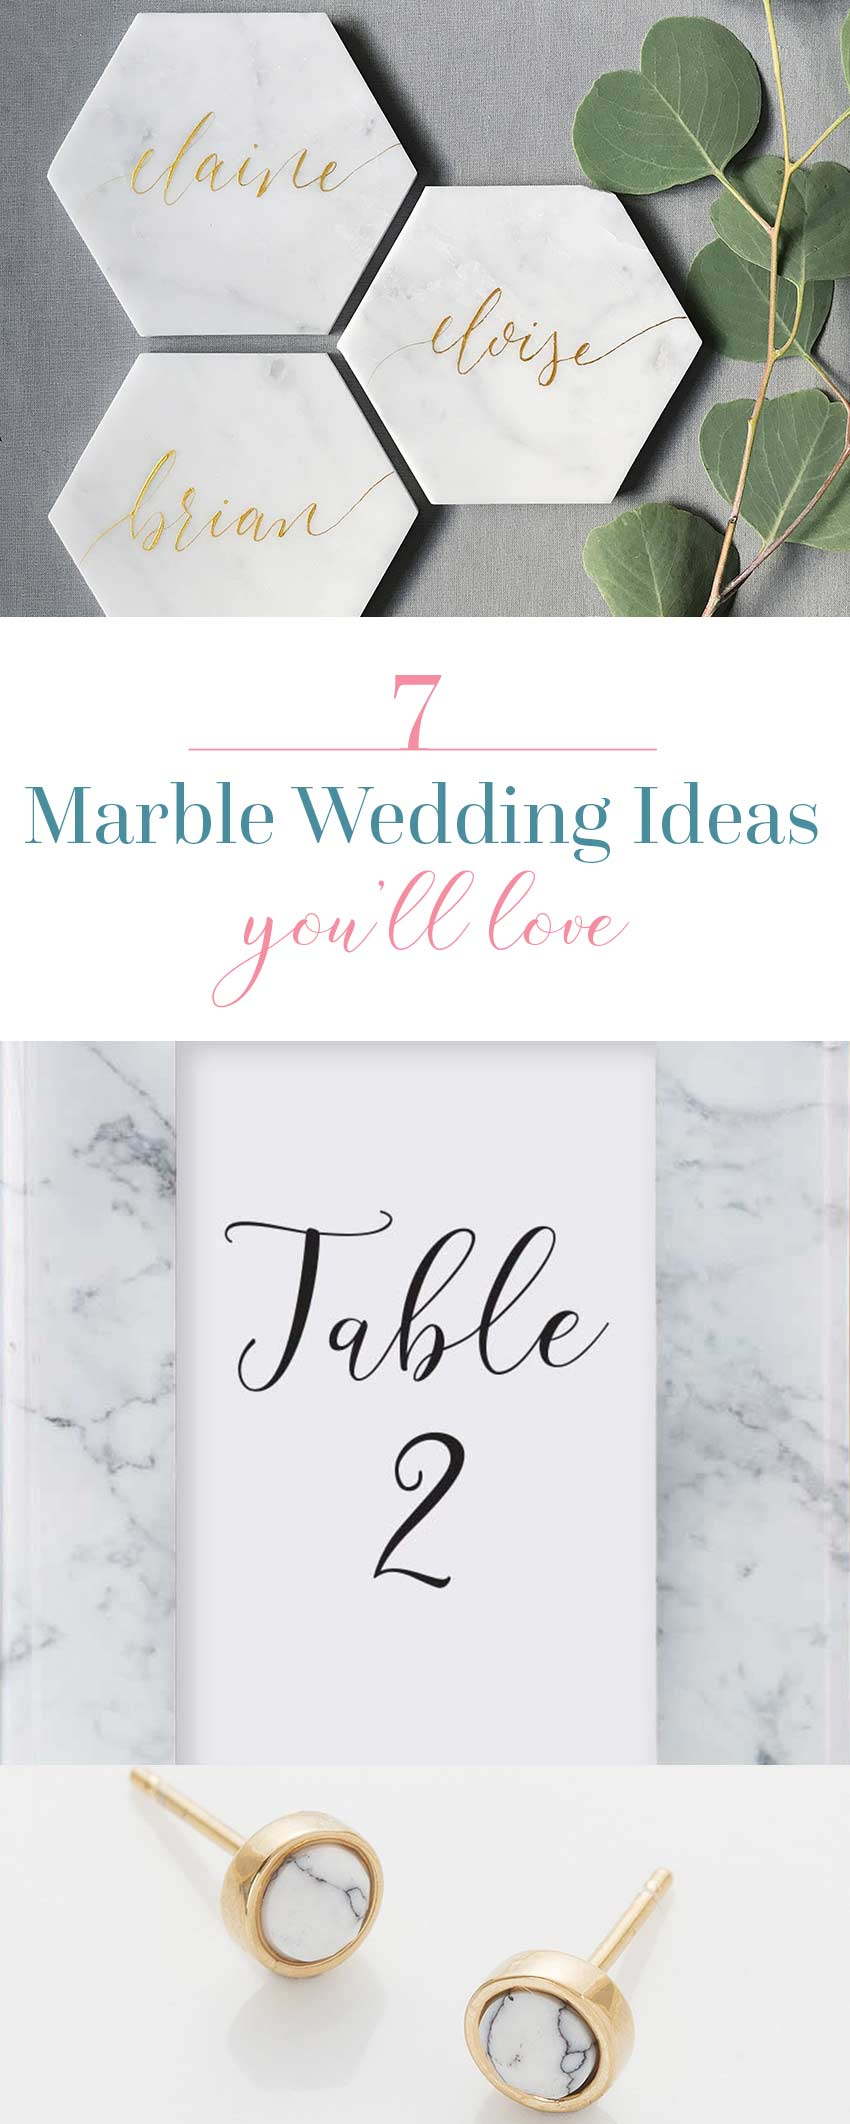 7 Marble Wedding Ideas You'll Love!